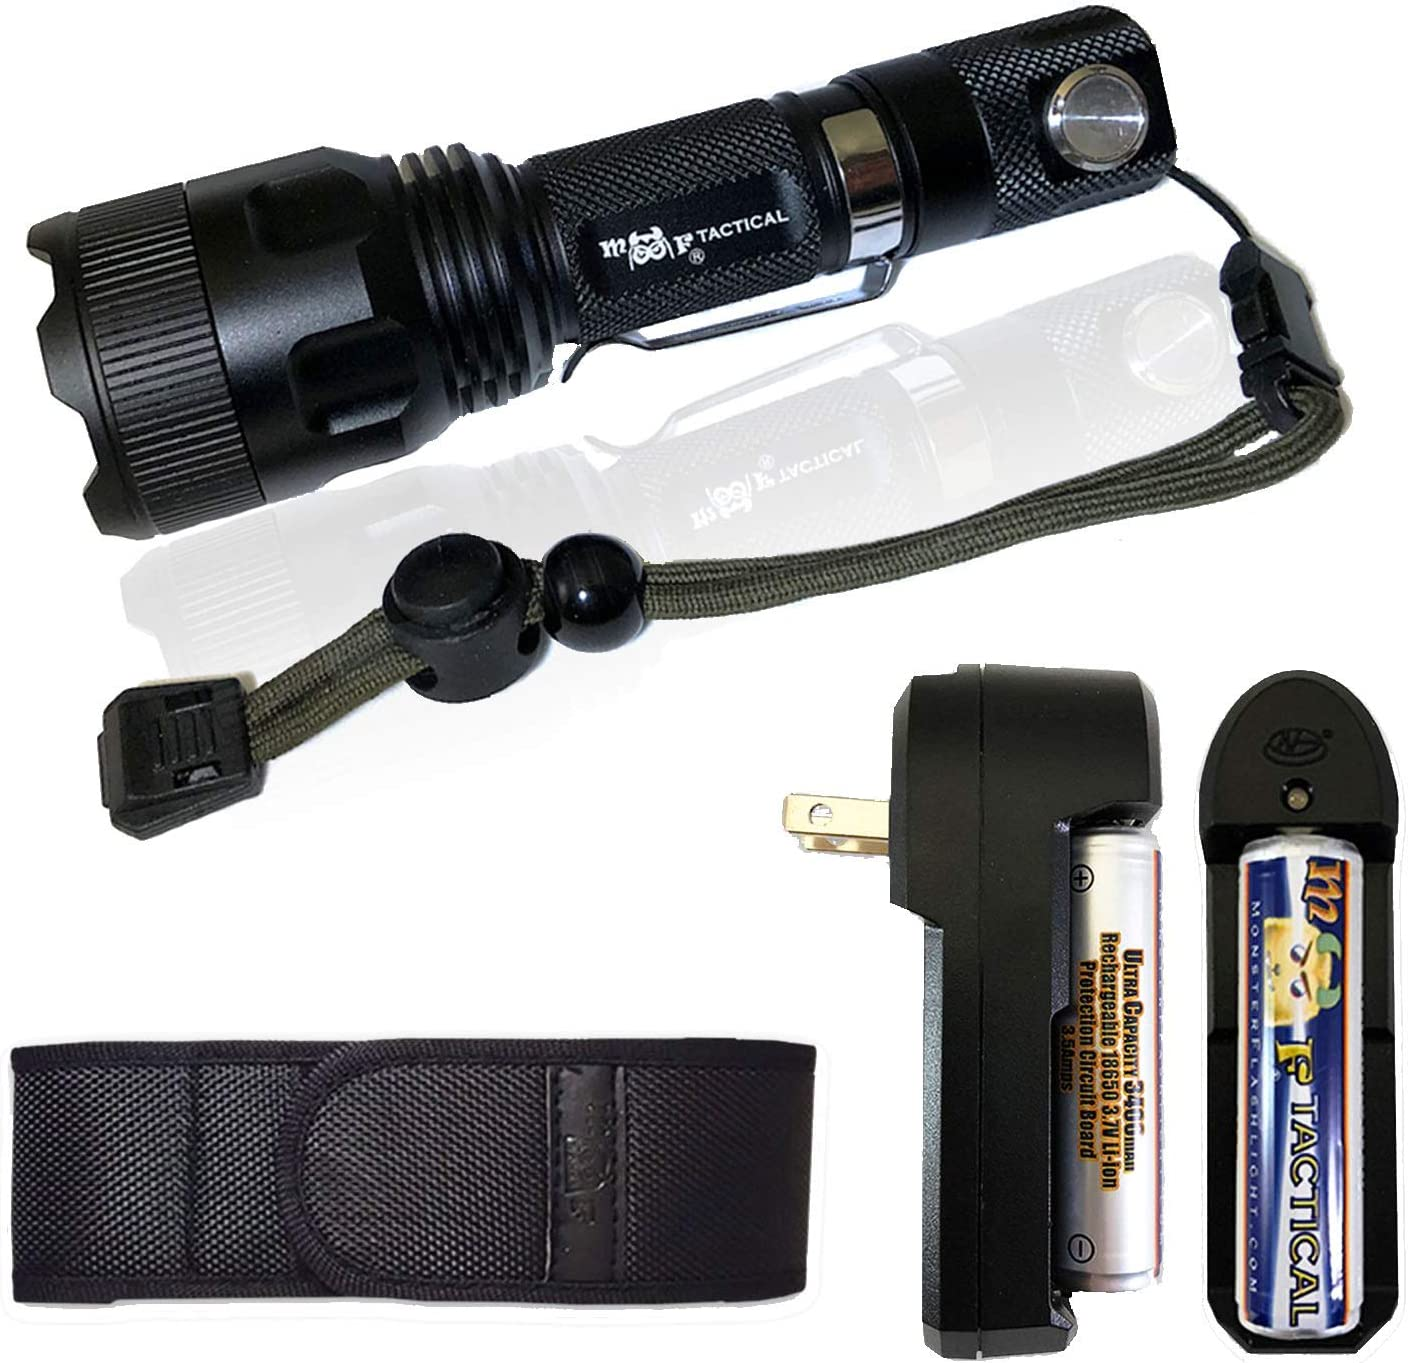 MF Tactical Delta-5 Rechargeable Tactical LED Flashlight Kit - 1300 Lumen Hi Quality Pro Grade 5 Mode w/Electronic Switch & Magnetic Base. Includes Li-ion Battery/Charger, Holster, Strap & Pocket Clip